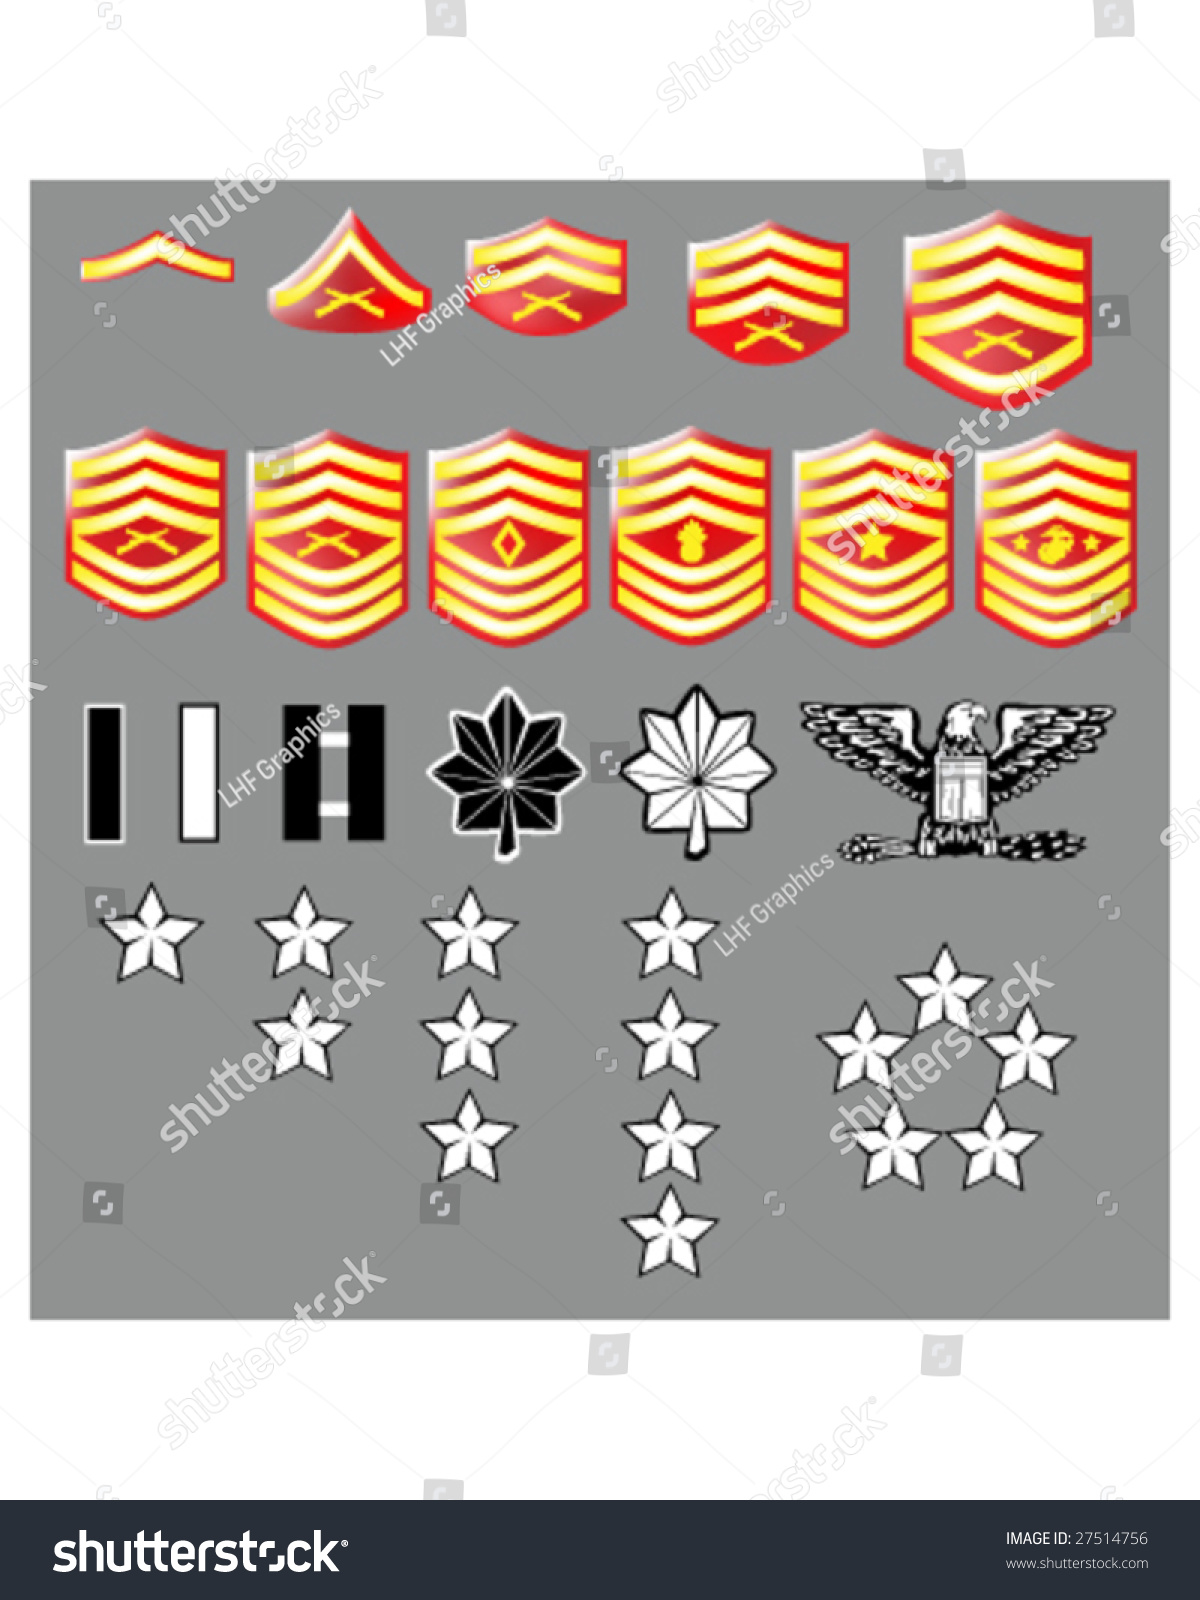 Us marine corps rank insignia officers stock vector 27514756 us marine corps rank insignia for officers and enlisted in vector format with texture buycottarizona Image collections